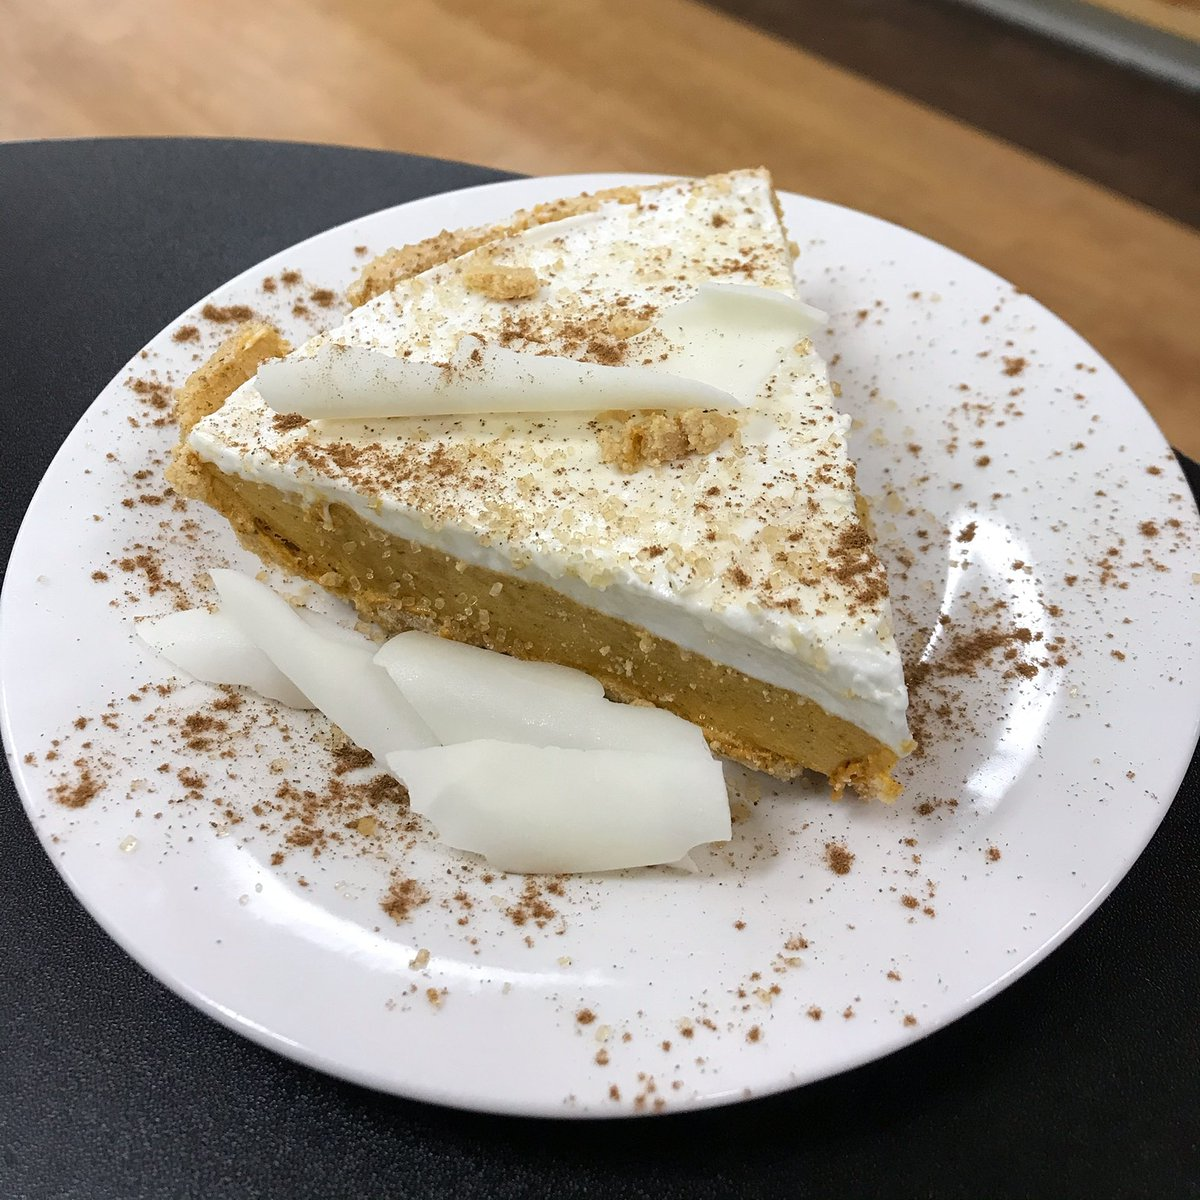 White Chocolate Pumpkin Gelato 🥧... Perfect way to indulge this evening!!! #gelato #whitechocolate #pumpkin #pumpkinspice #pie #visithotsprings #hotsprings #hotspringsarkansas #spacity #homemade #datenight #saturday #dessert #openlate #instafood #foodie #familytime #holidays